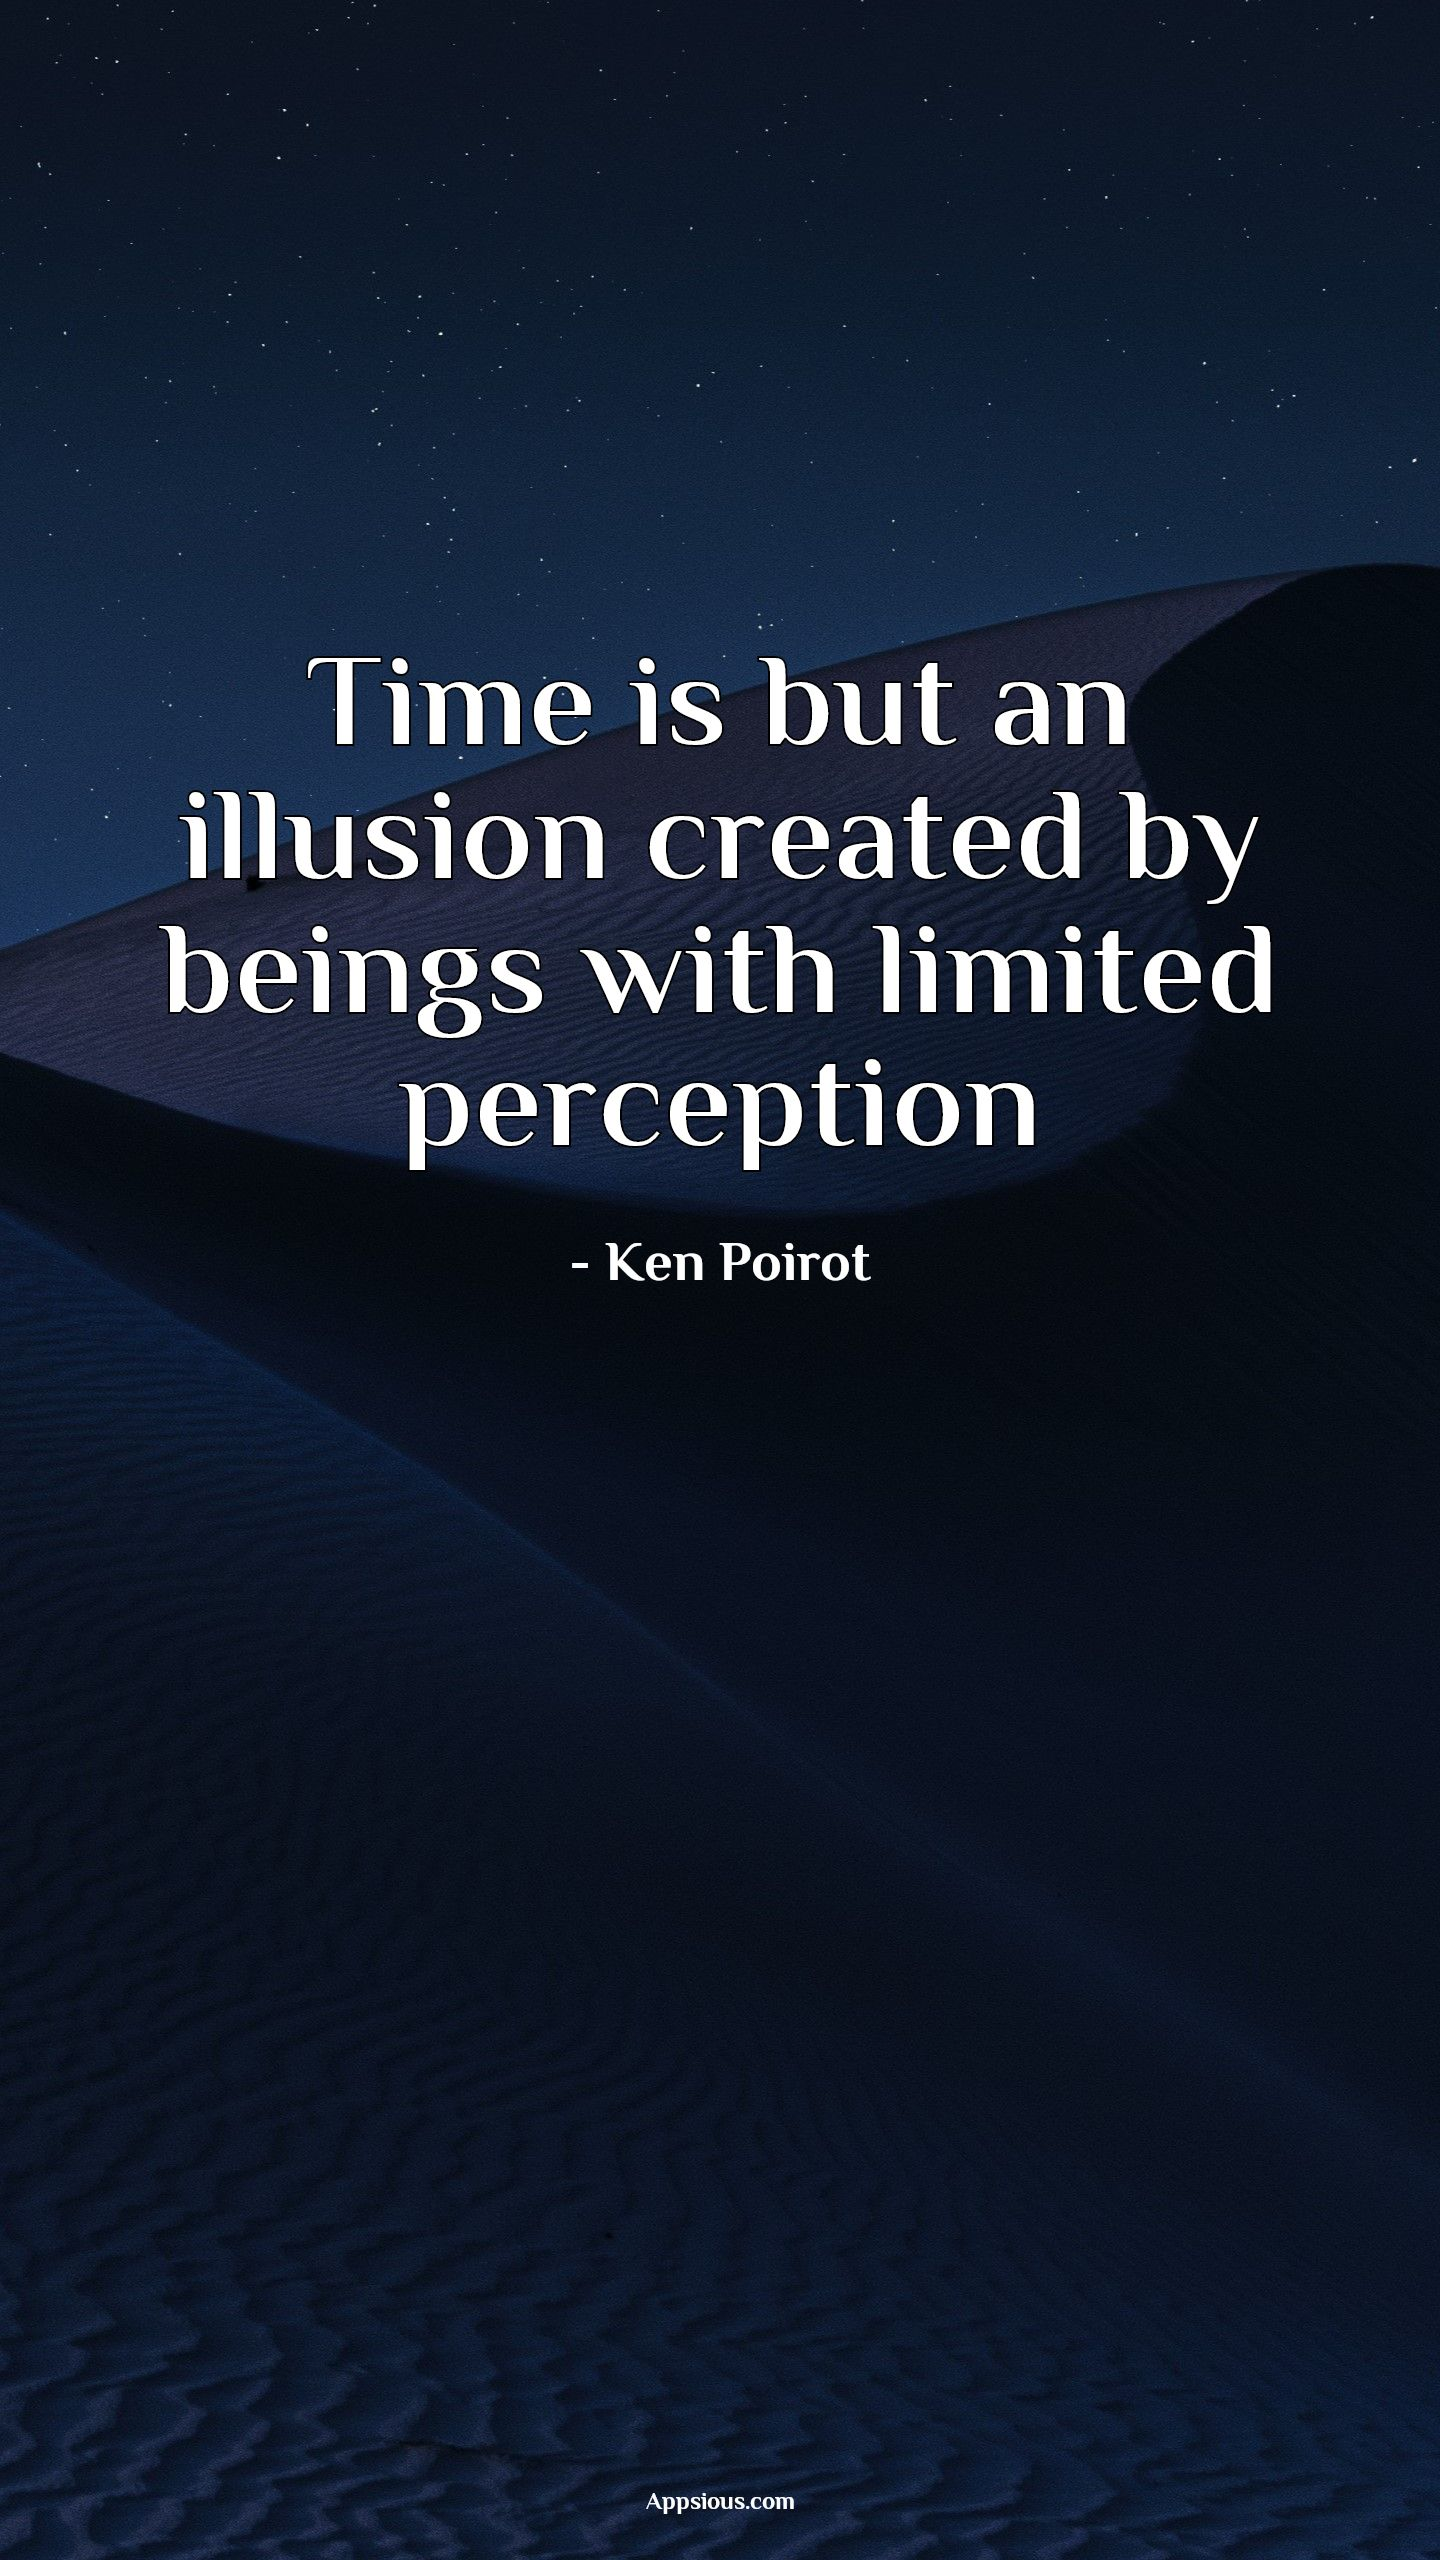 Time is but an illusion created by beings with limited perception